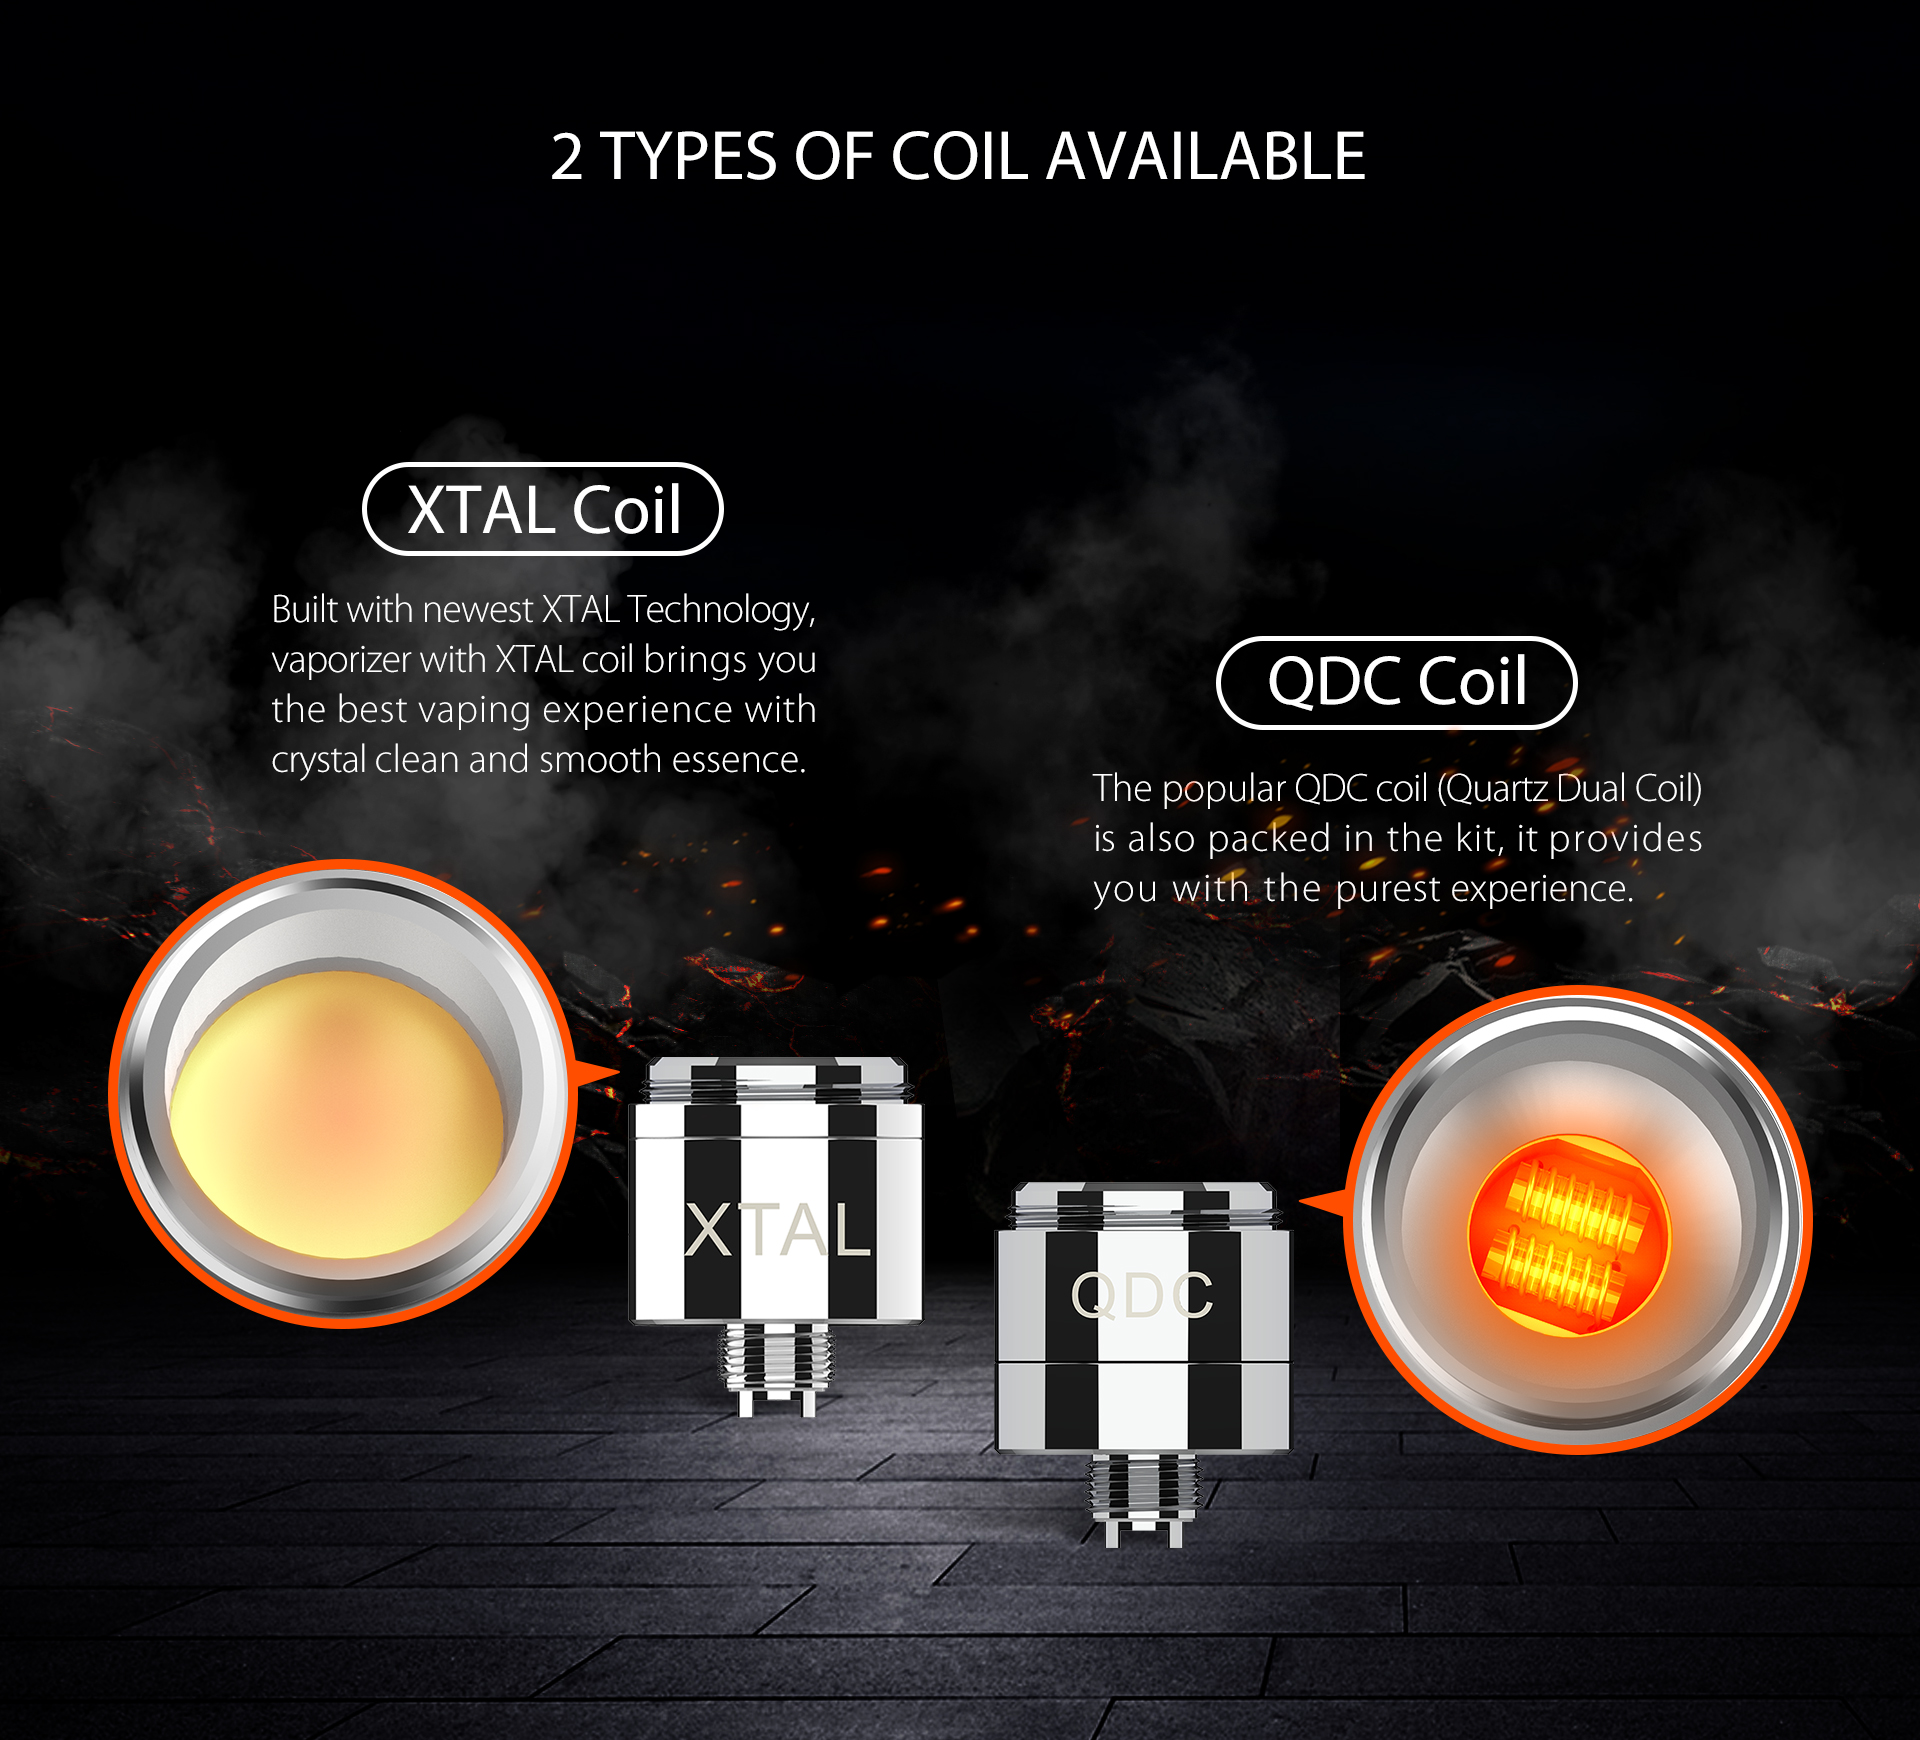 Yocan Flame vaporizer pen has 2 Types Of Coil Available, XTAL coil and QDC coil.